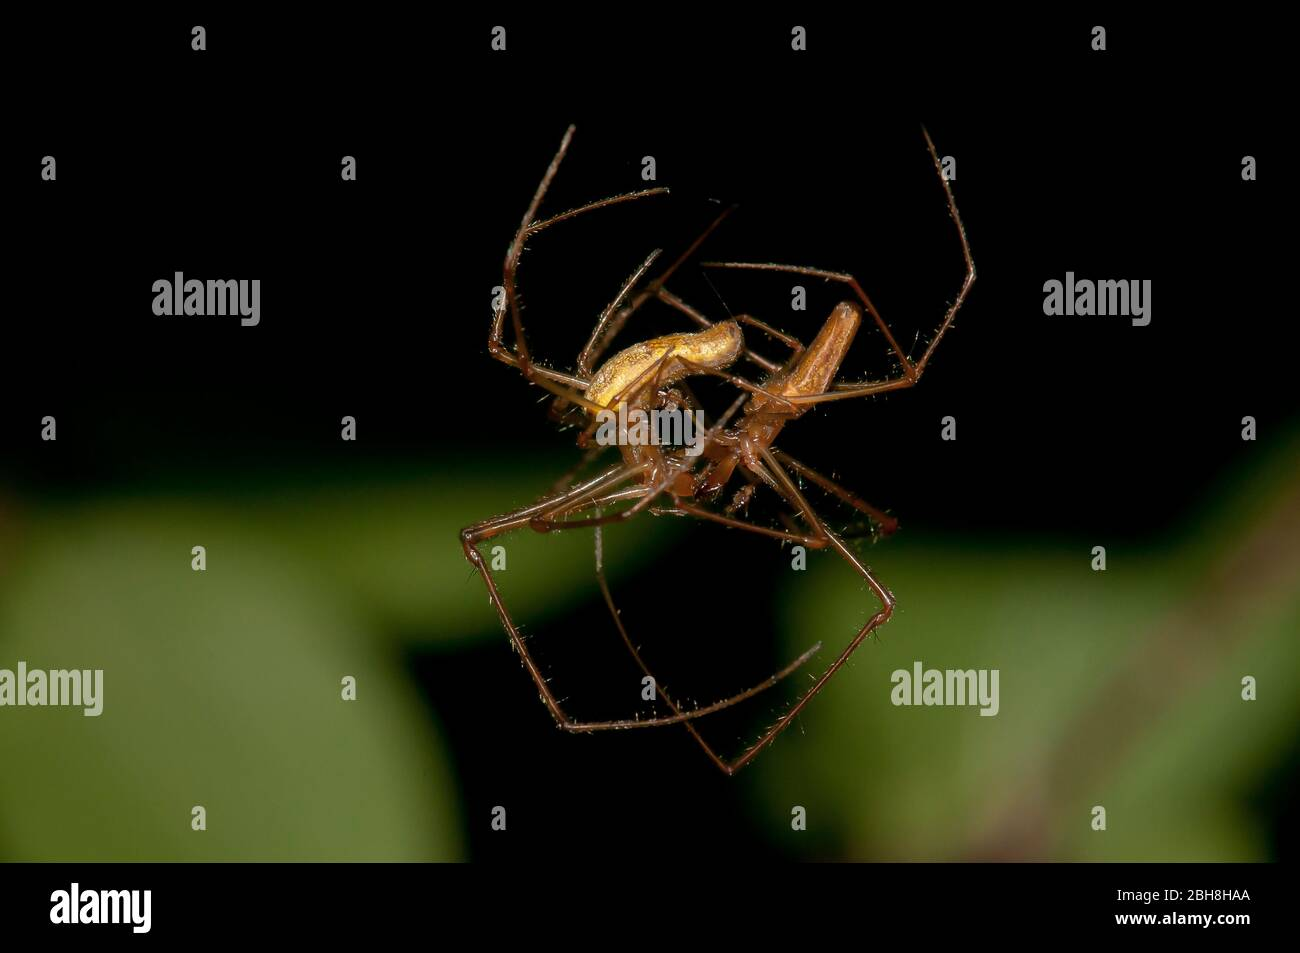 Common spider-spider, Tetragnatha extensa, hanging from a thread while mating, Bavaria, Germany Stock Photo